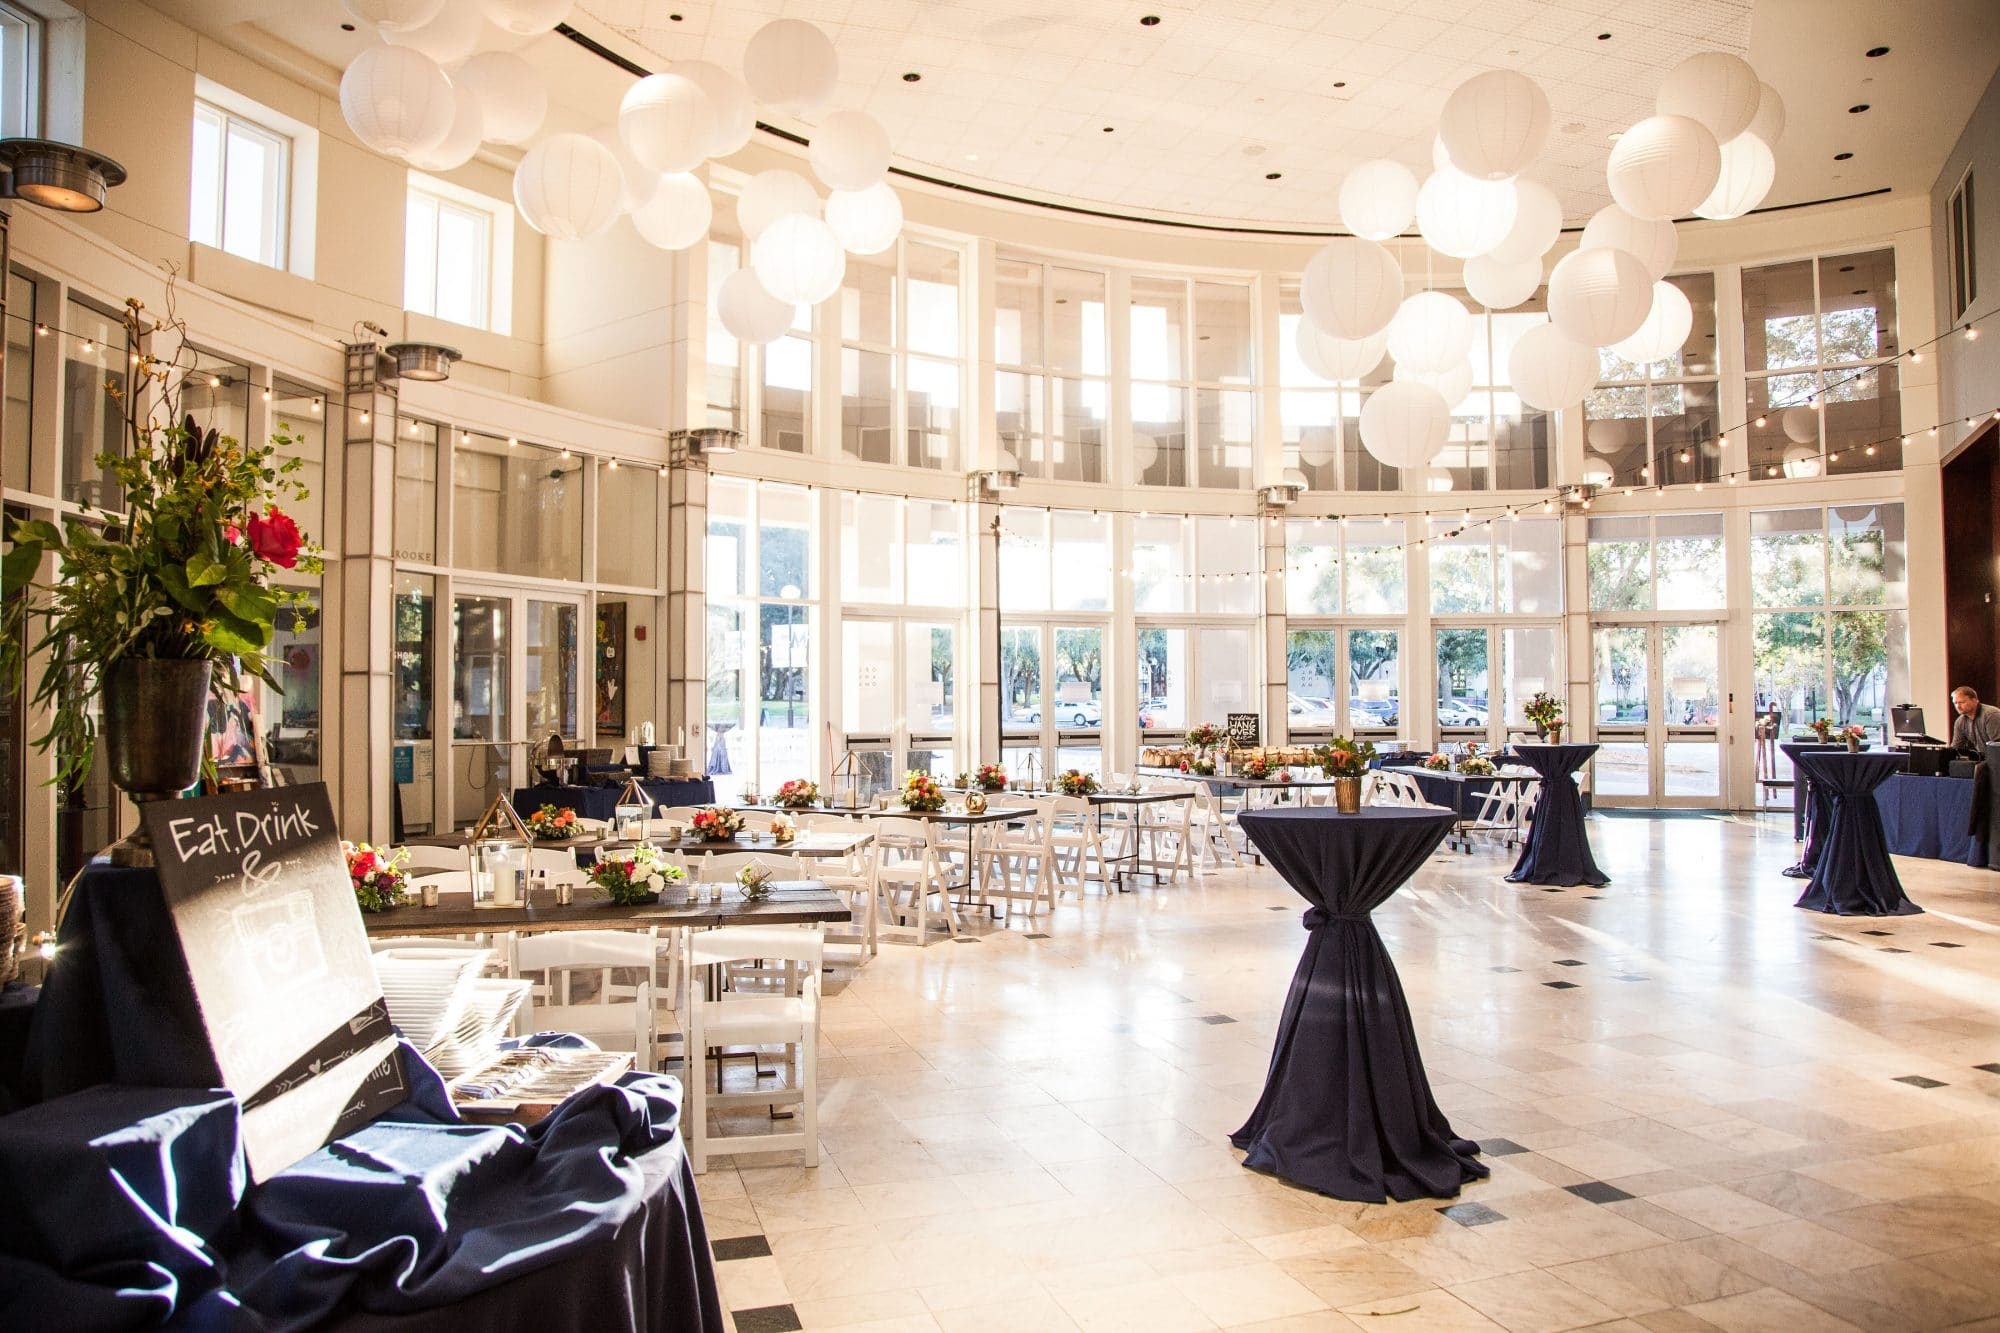 Orlando Museum of Art - reception hall filled with natural light